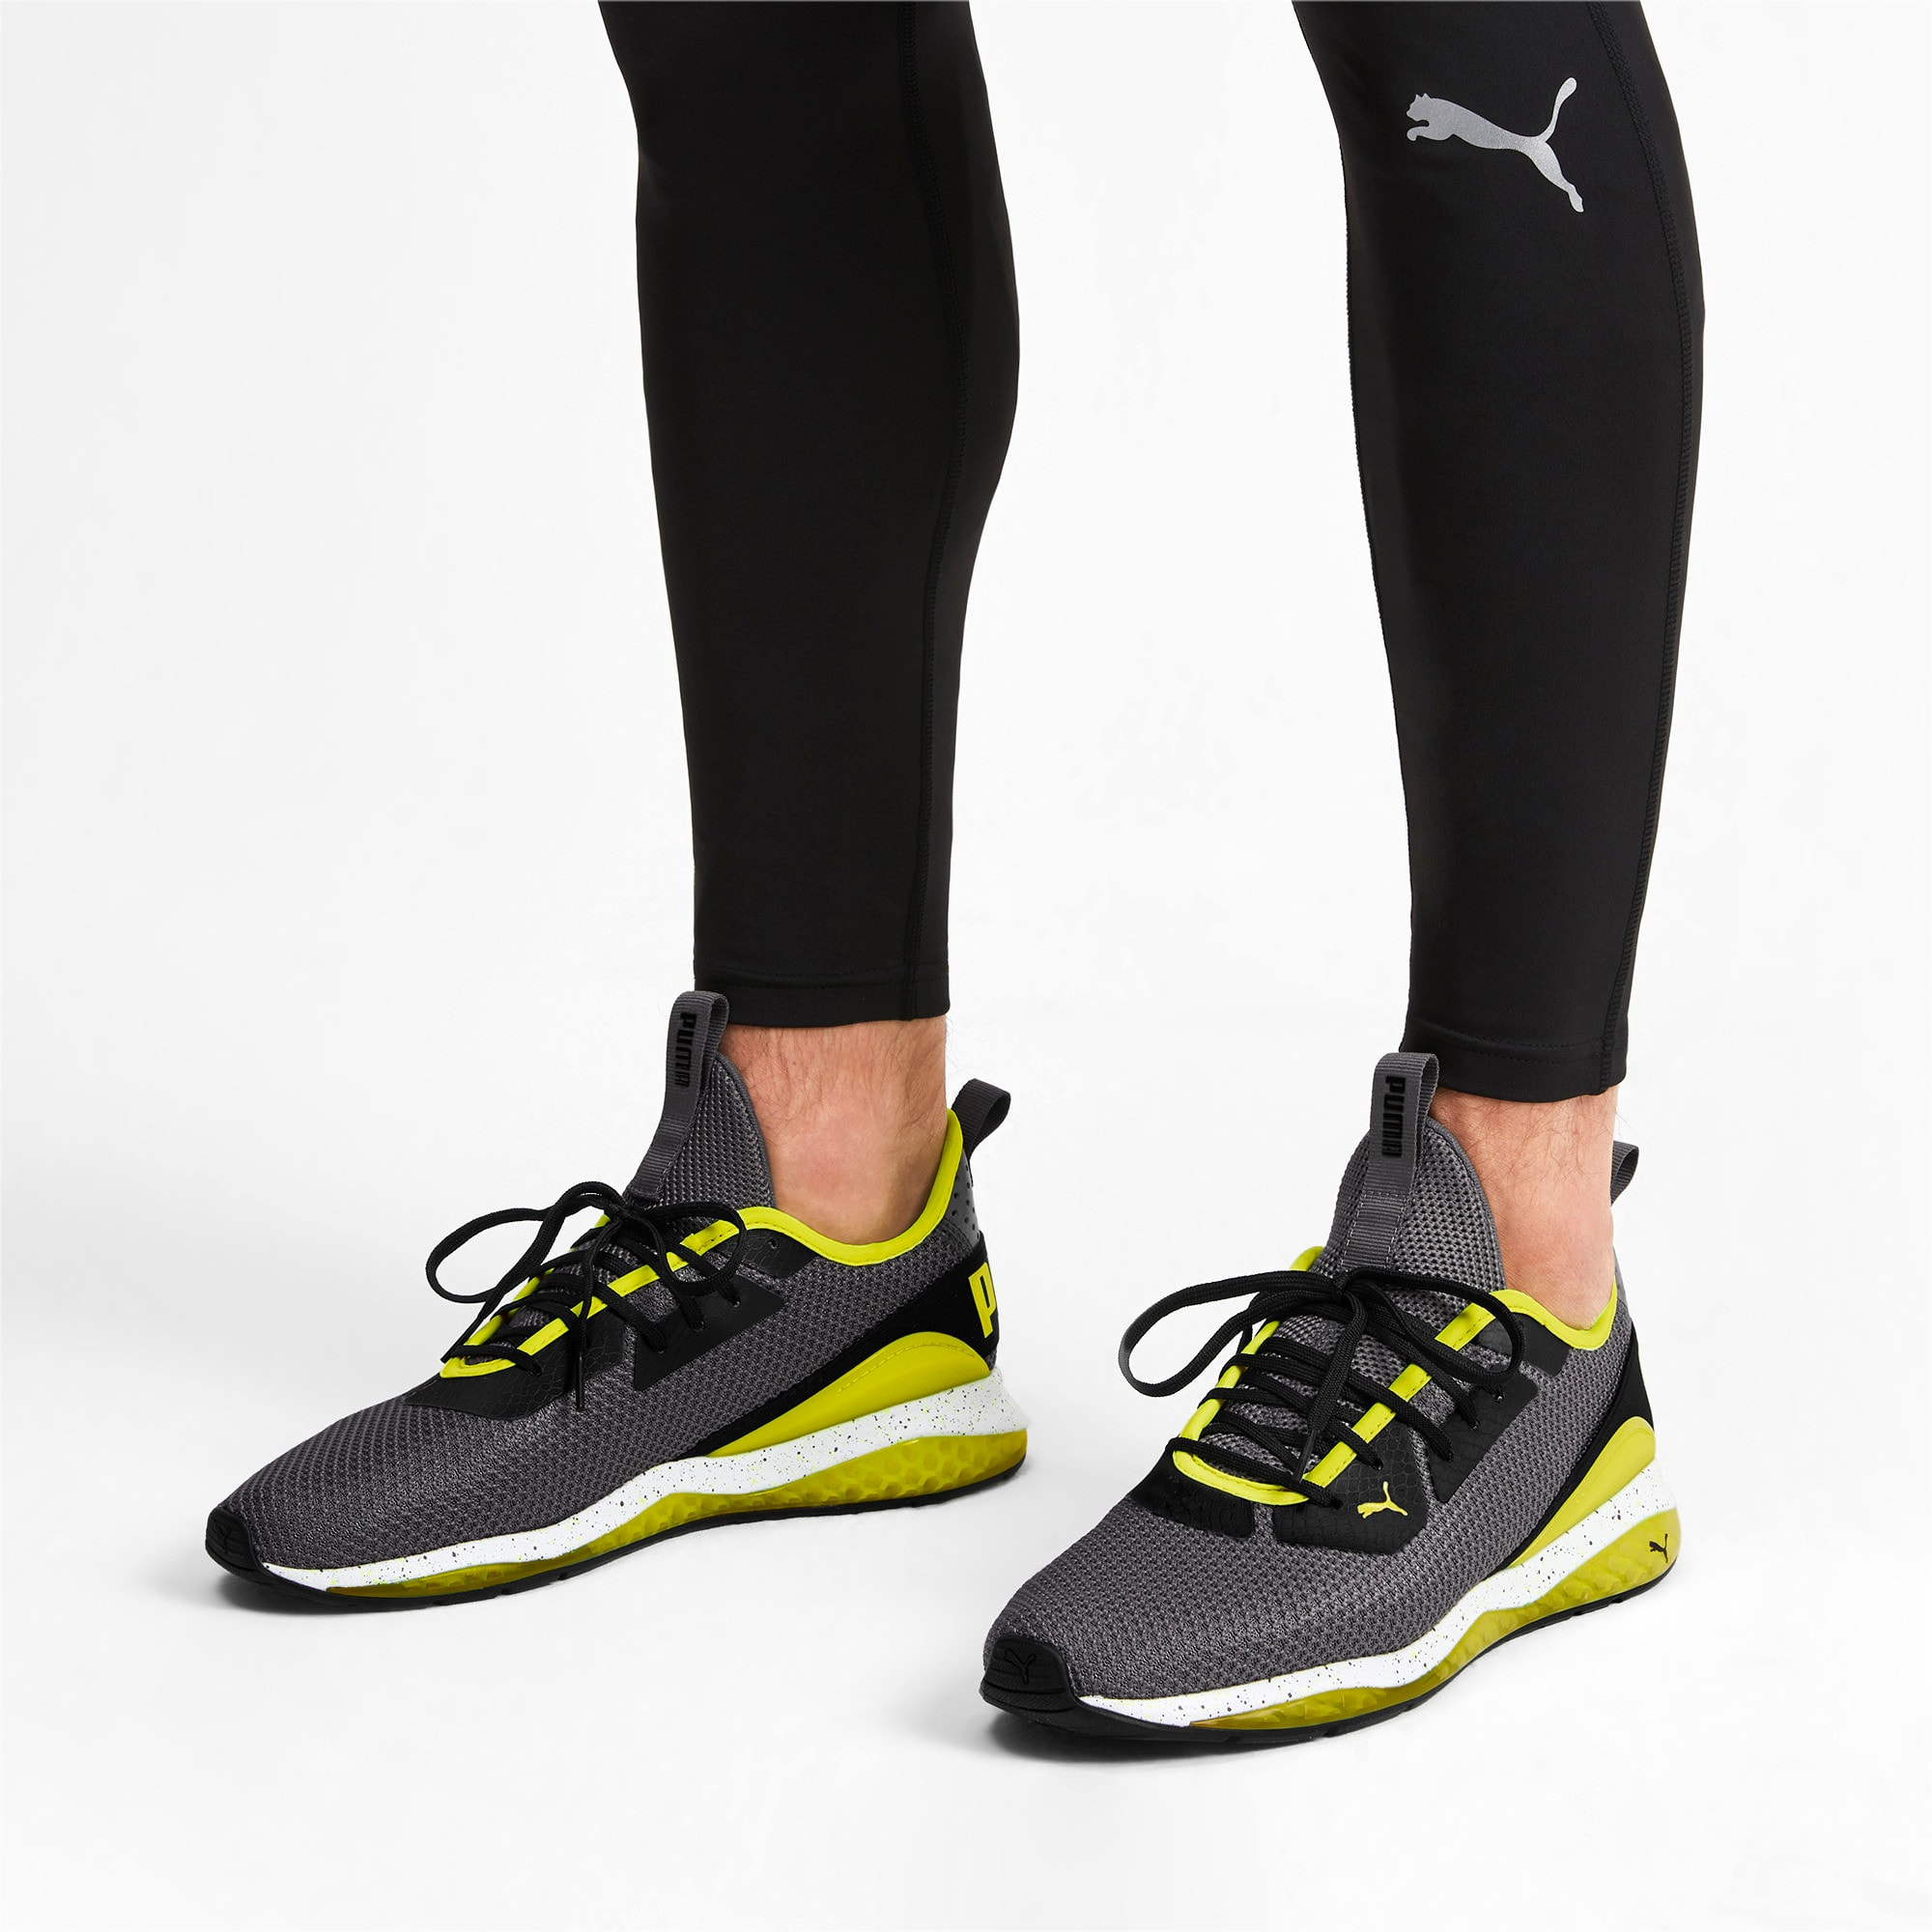 Thumbnail 2 of Cell Descend Weave Running Trainers, CASTLEROCK-Black-Yellow, medium-IND